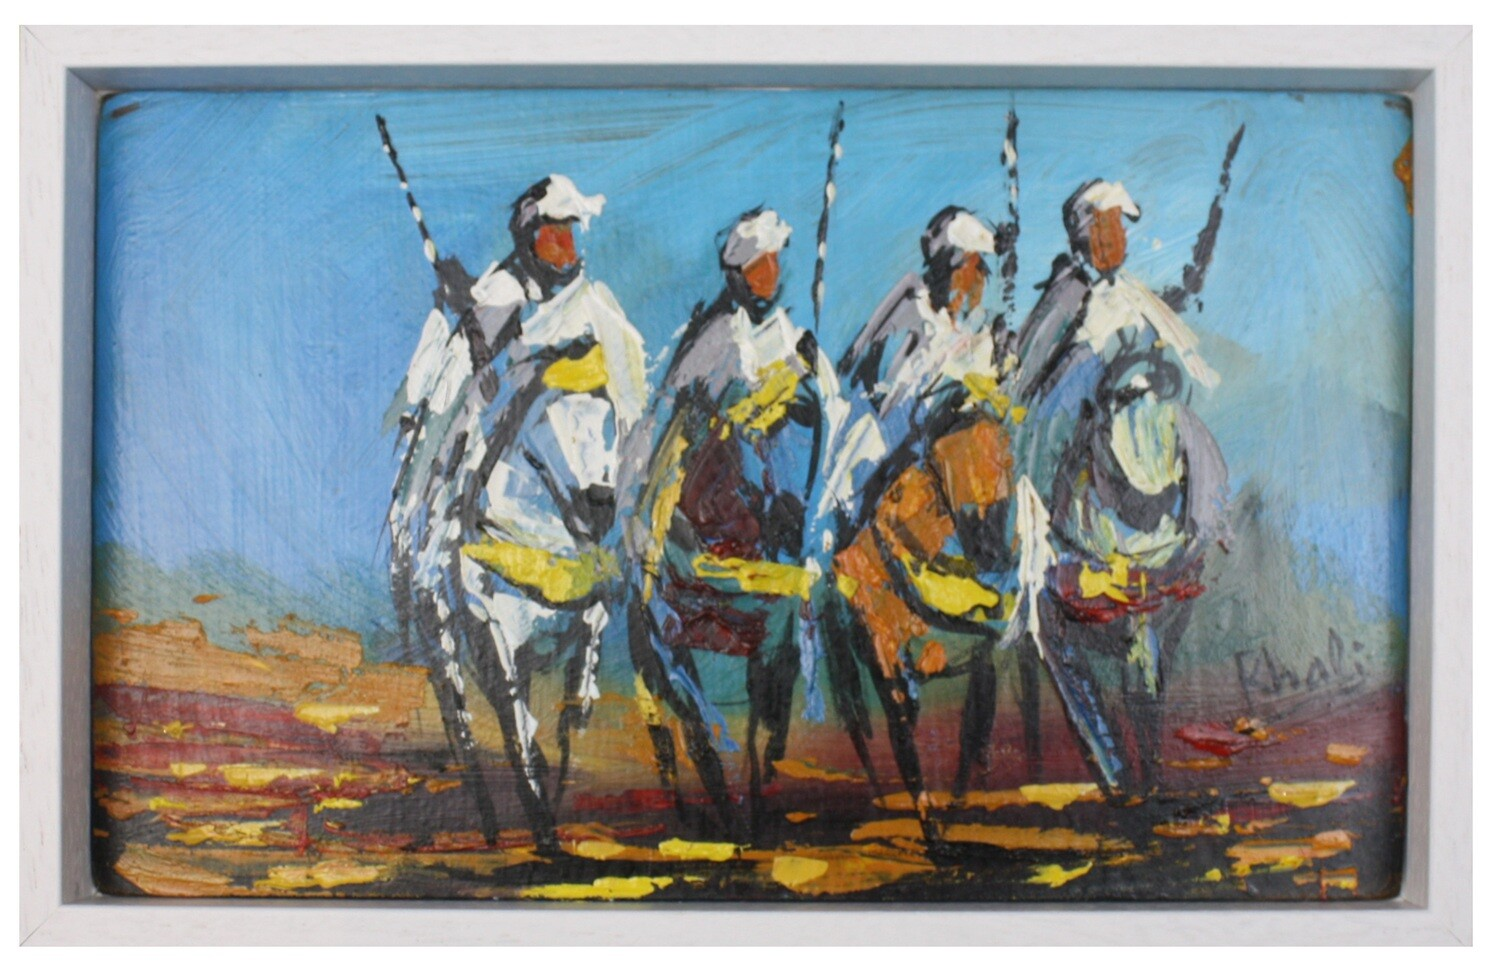 The Four Horse Men of Fez - Textured Multi-Media Hand painted Canvas in a White Frame